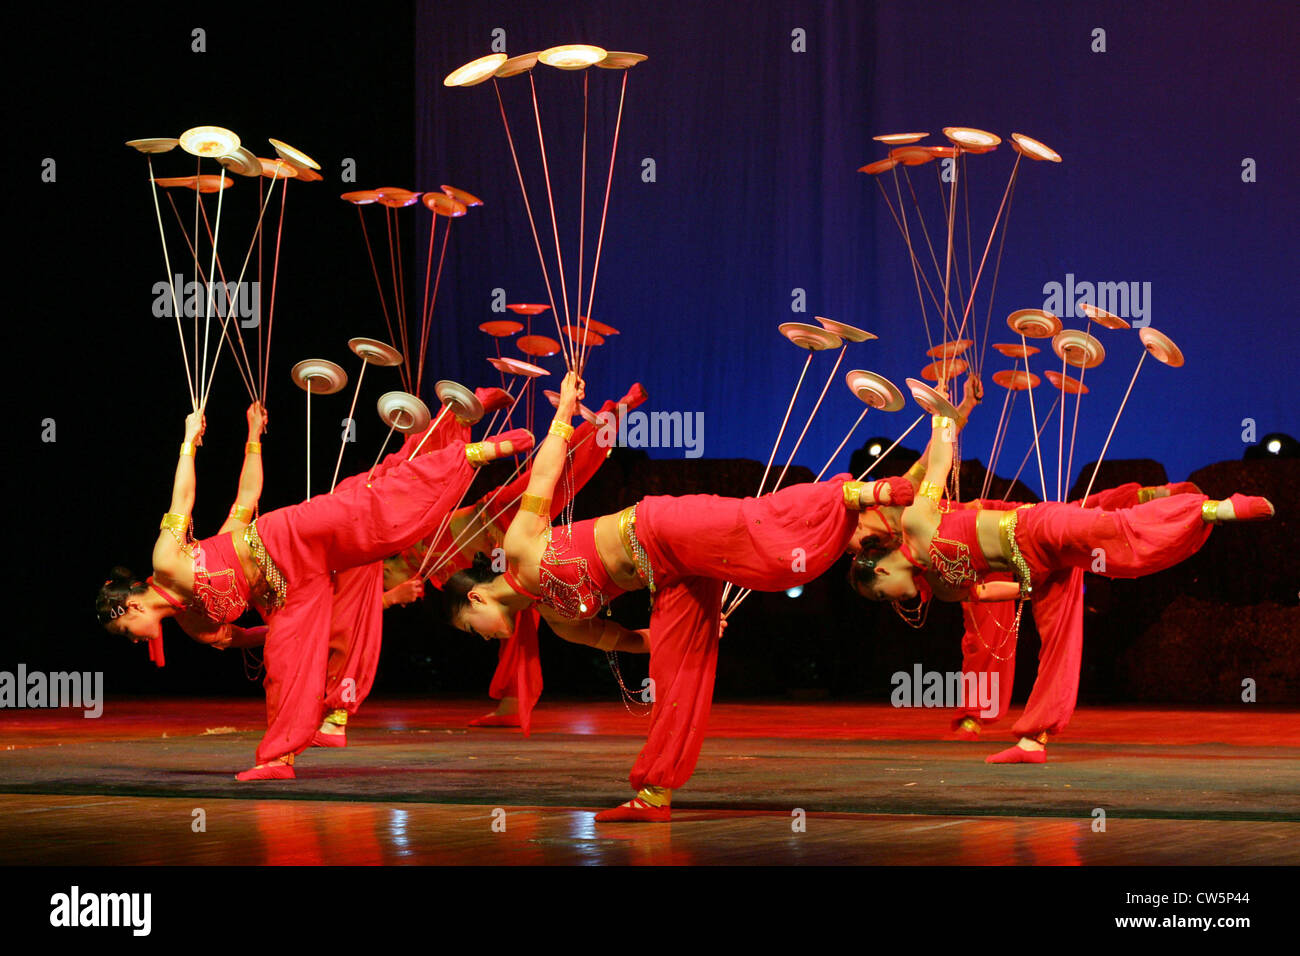 Beijing, Artistes juggling with plates - Stock Image